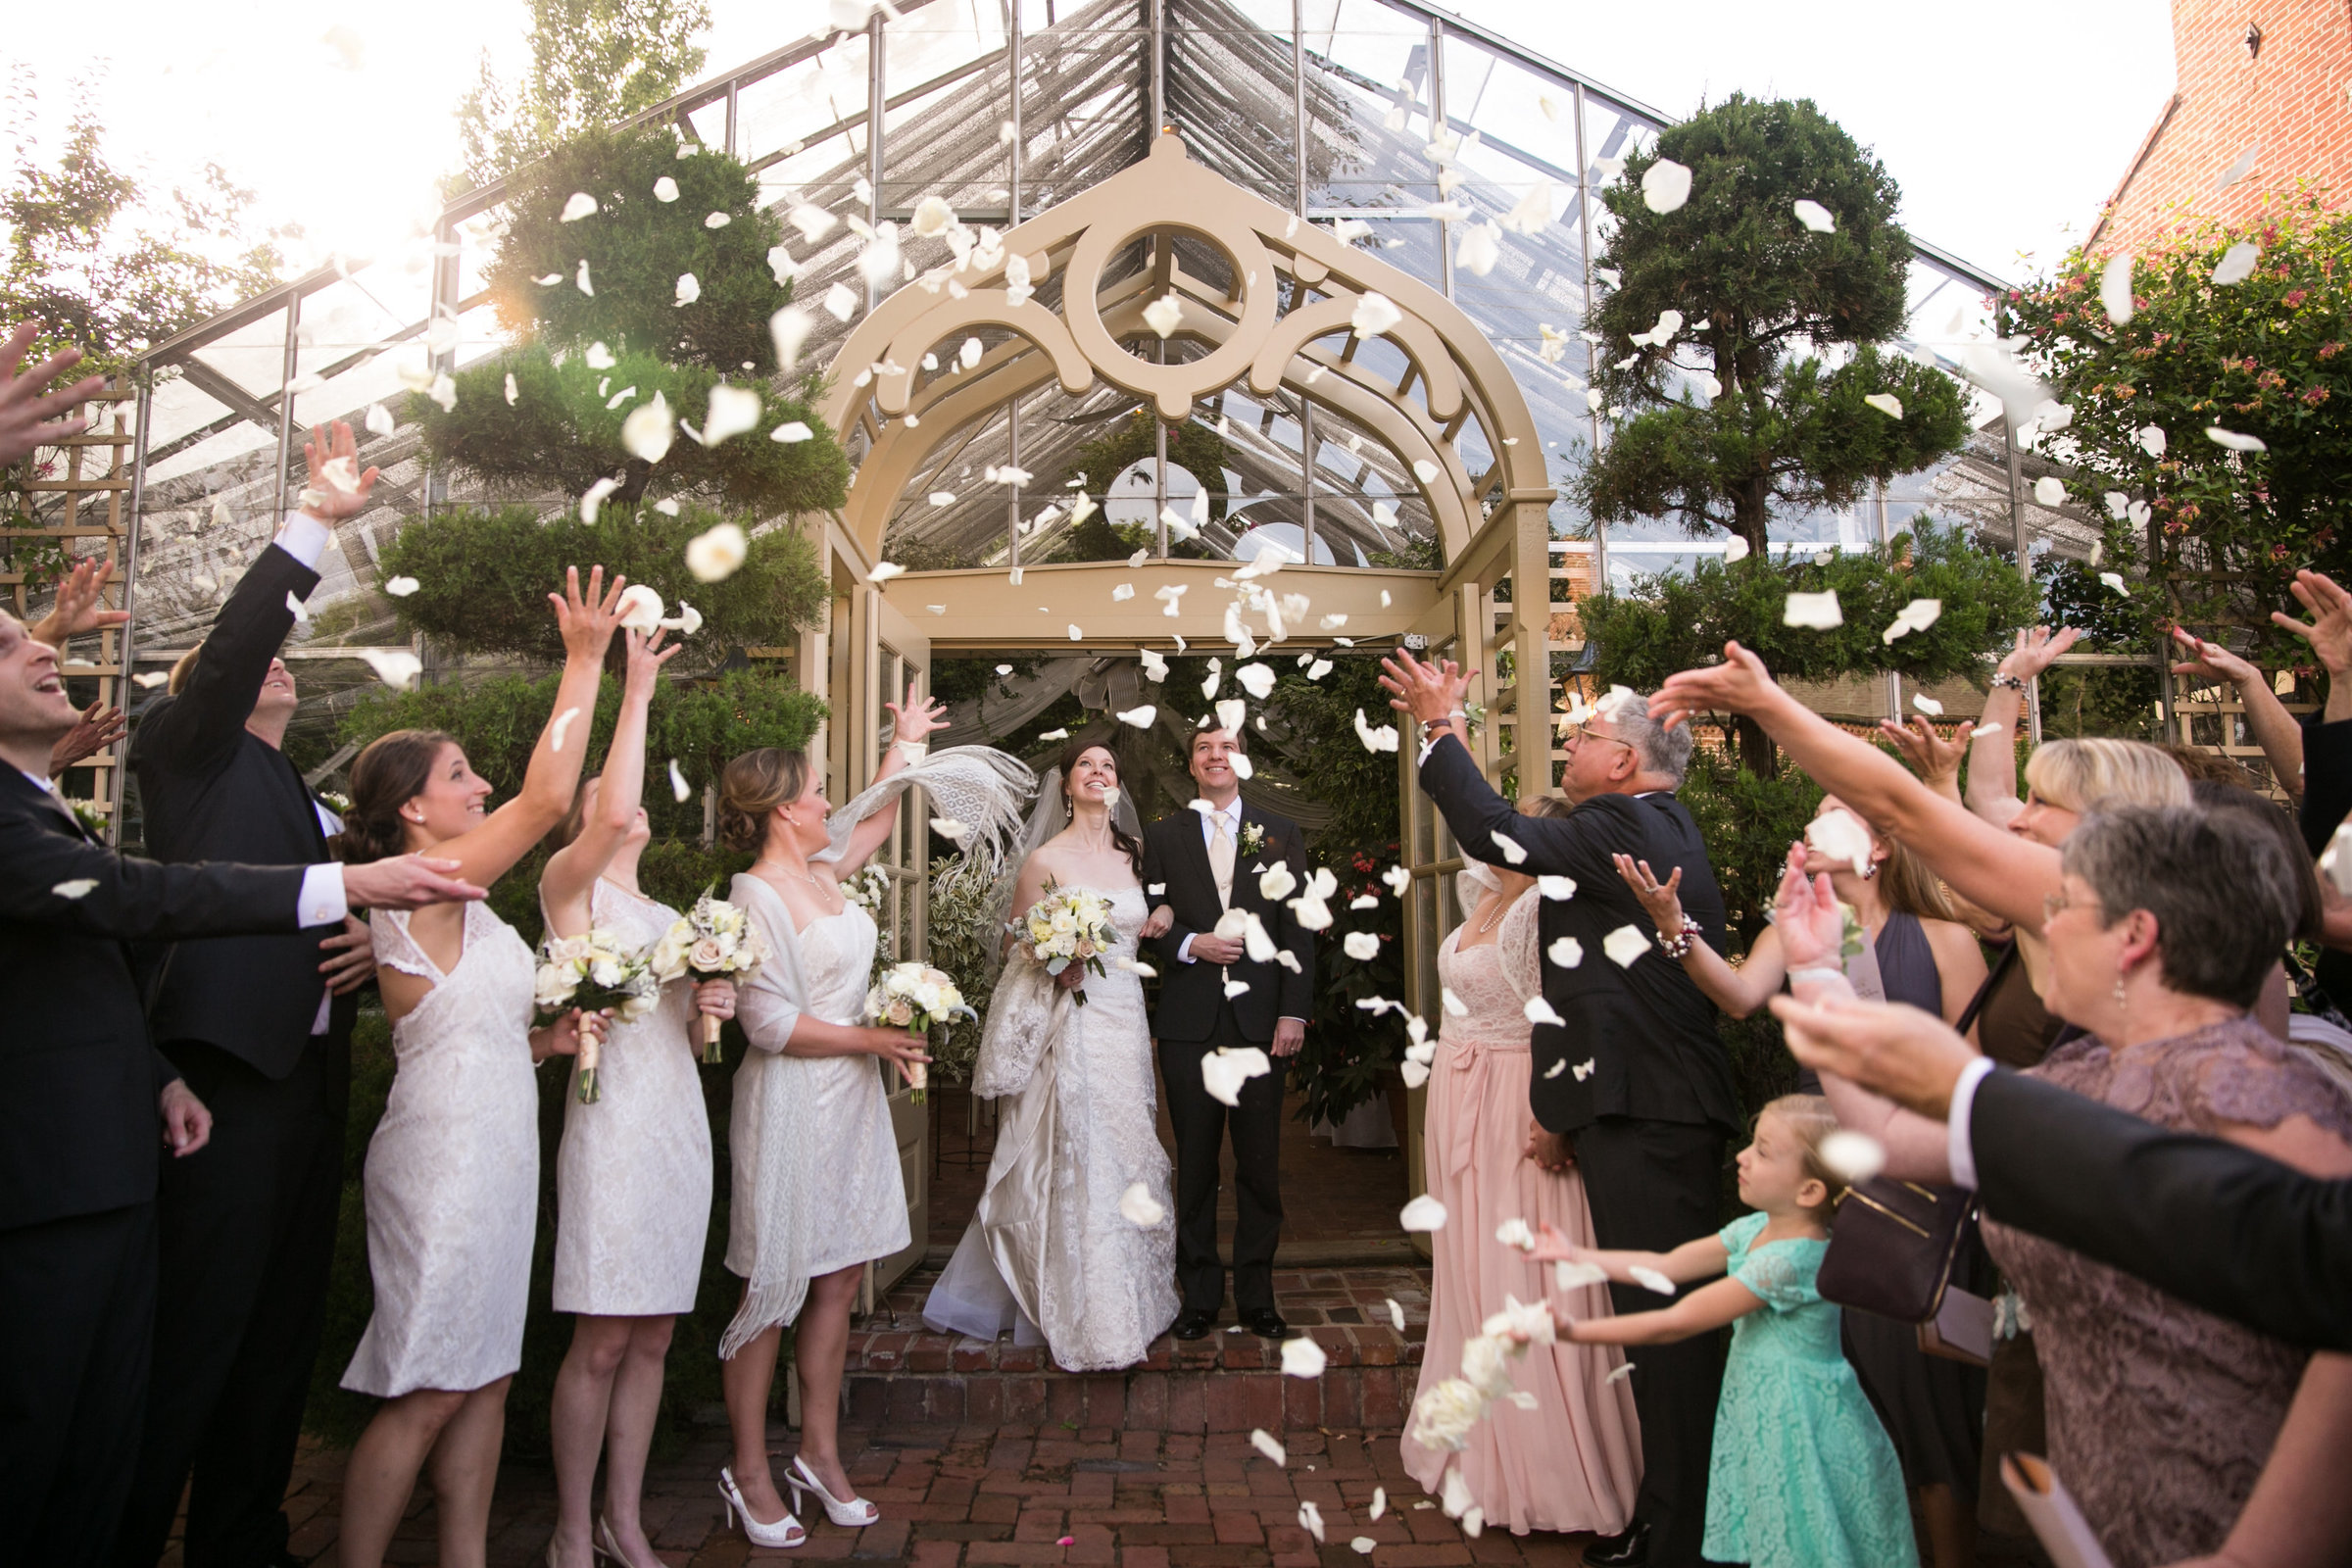 Bride and Groom Exit St. Charles Conservatory Wedding with guest throwing flower petals